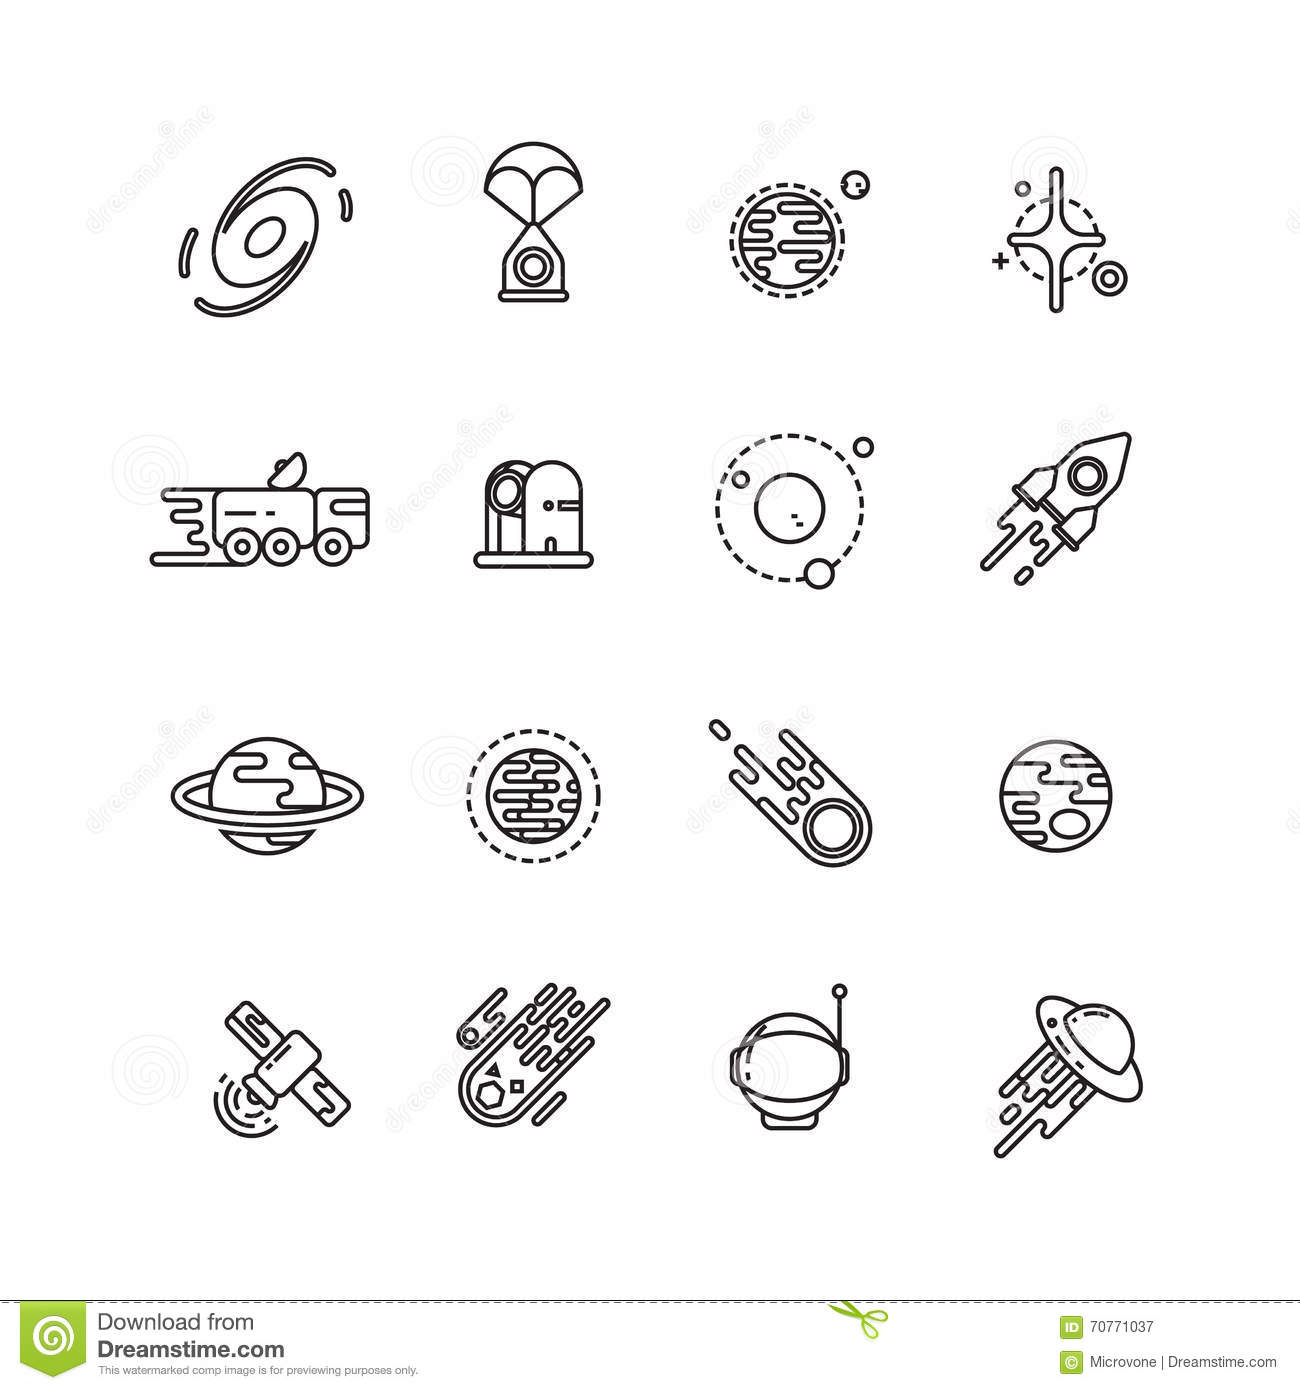 Cosmos Astronomy And Astrology Space Line Vector Icons